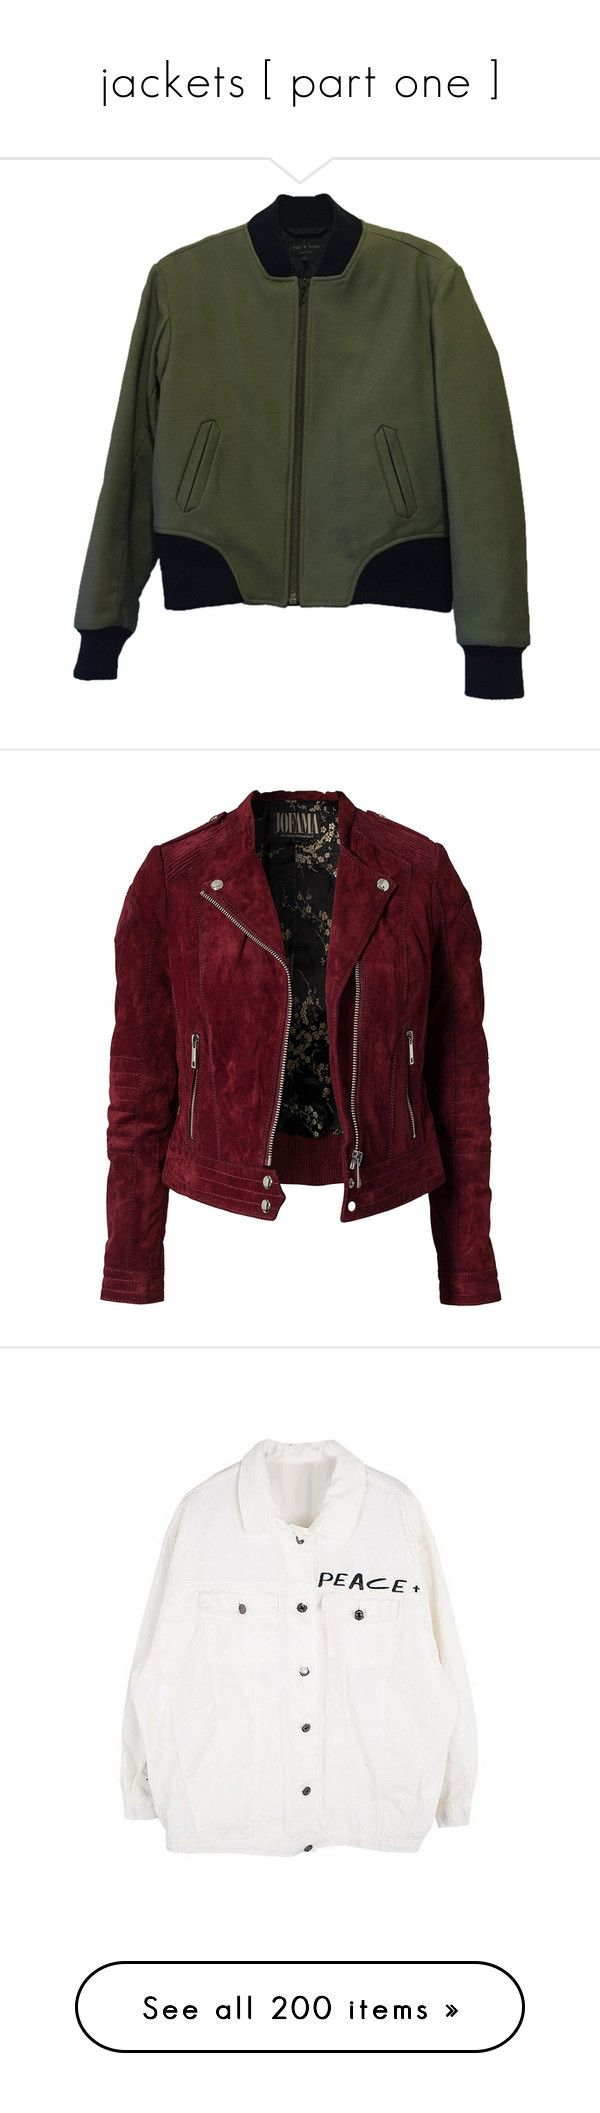 """""""jackets [ part one ]"""" by y0ur-aw3s0m3-an0ns ❤ liked on Polyvore featuring outerwear, jackets, tops, coats & jackets, none, military leather jacket, green jacket, leather bomber jacket, bomber jacket and real leather jackets"""